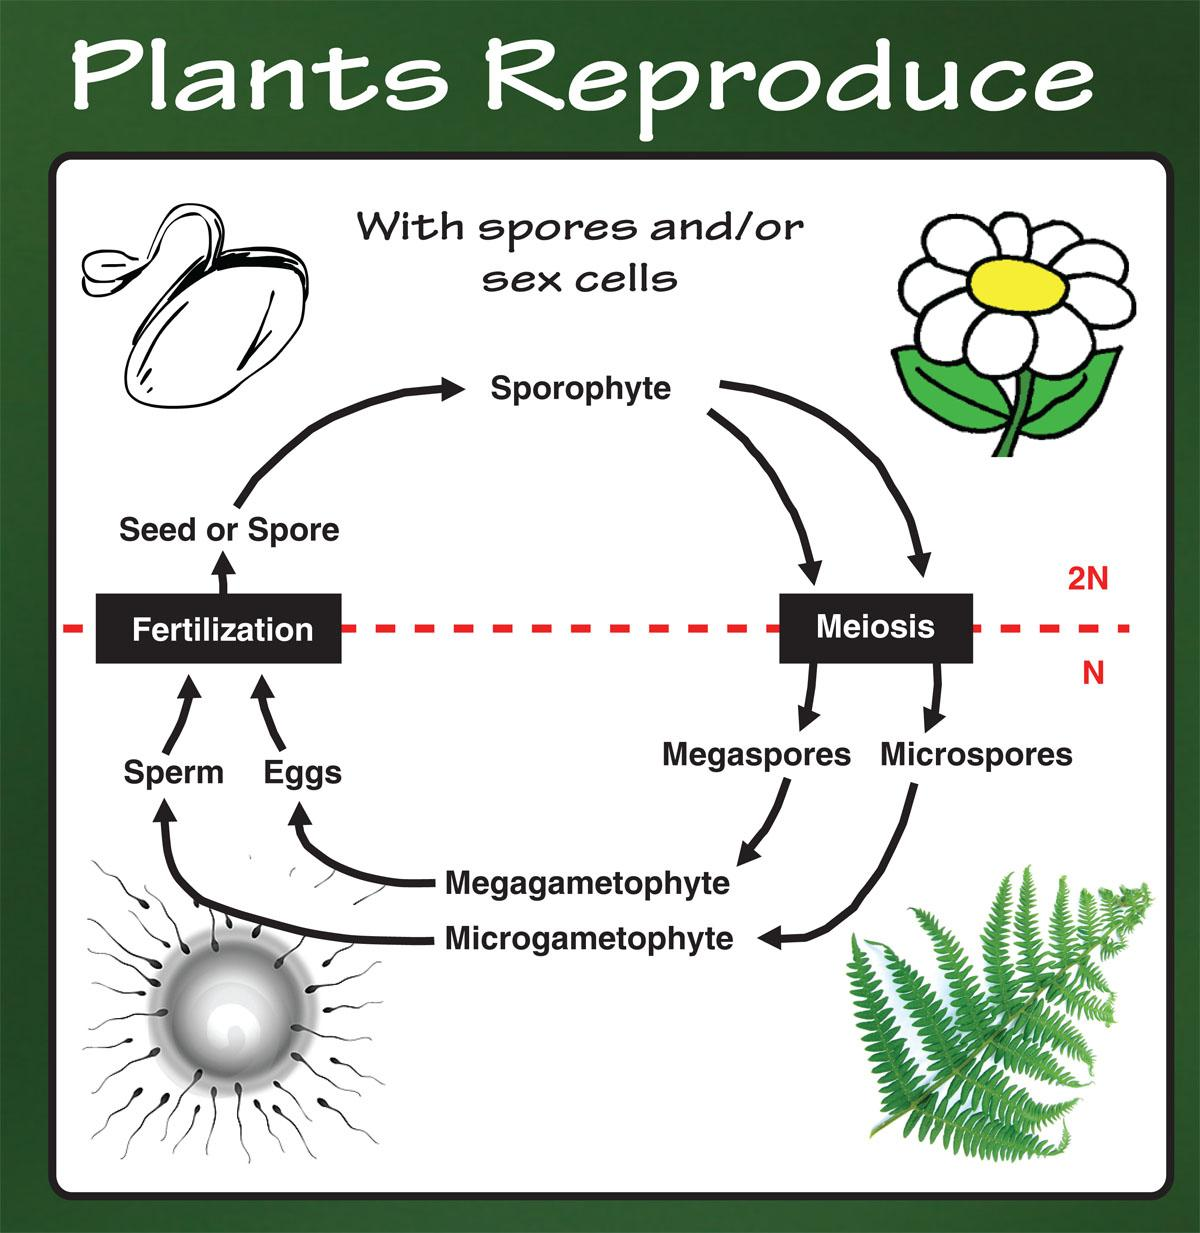 Plants Reproduce with spores and/or cells.